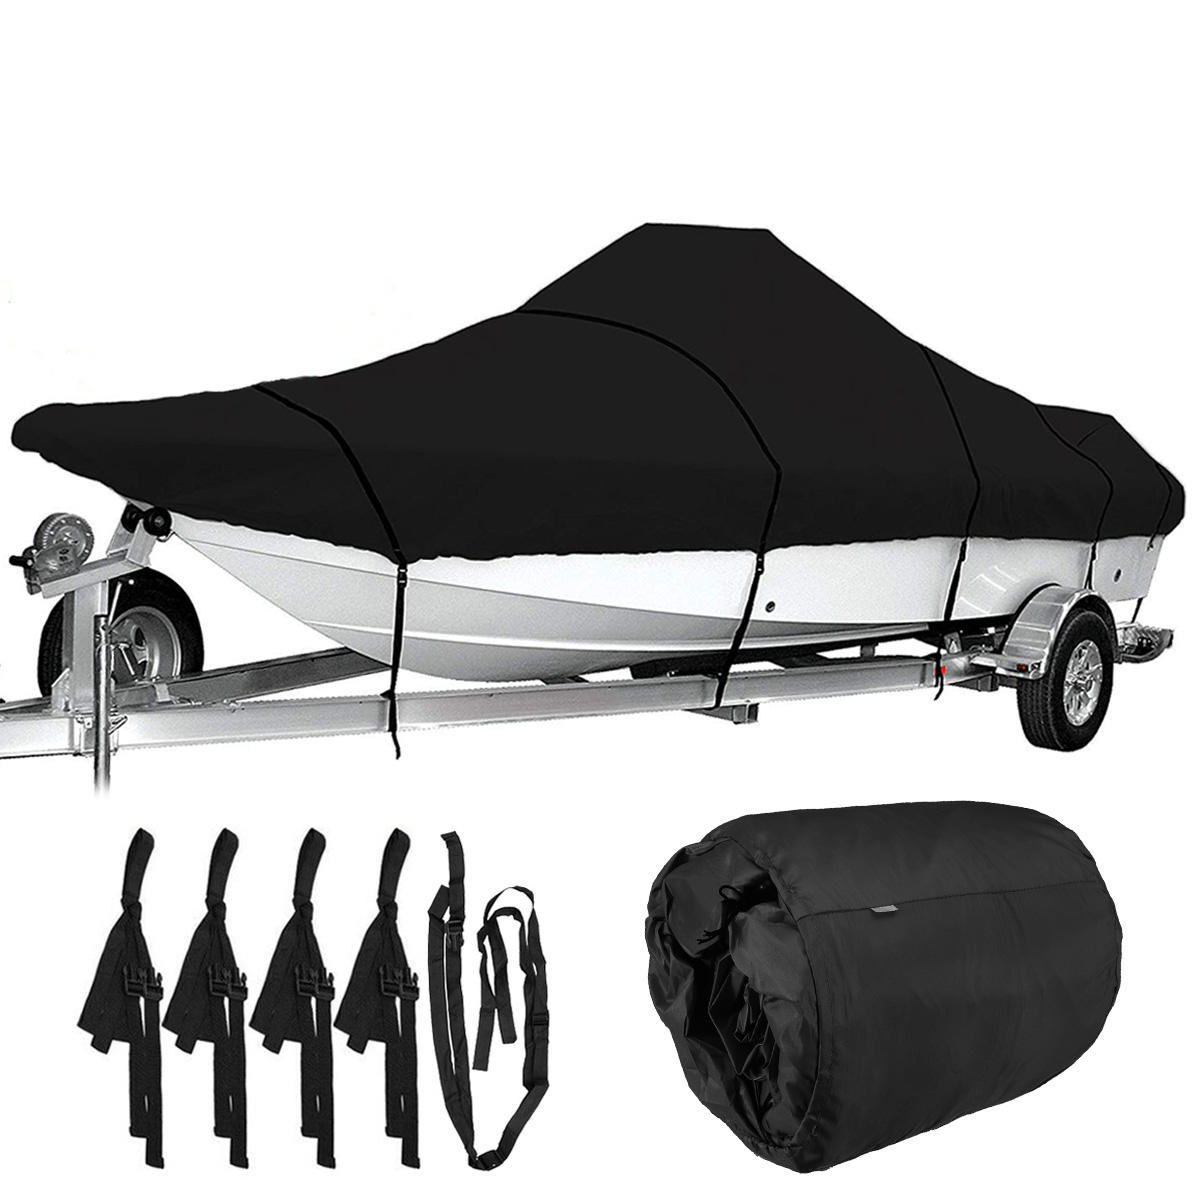 17-19ft / 19-21ft / 21ft-23ft / 23ft-25ft Waterproof Heavy Duty Boat Cover Marine Grade 210D Trailerable V-hull Fishing Ski Bass Runabouts Black